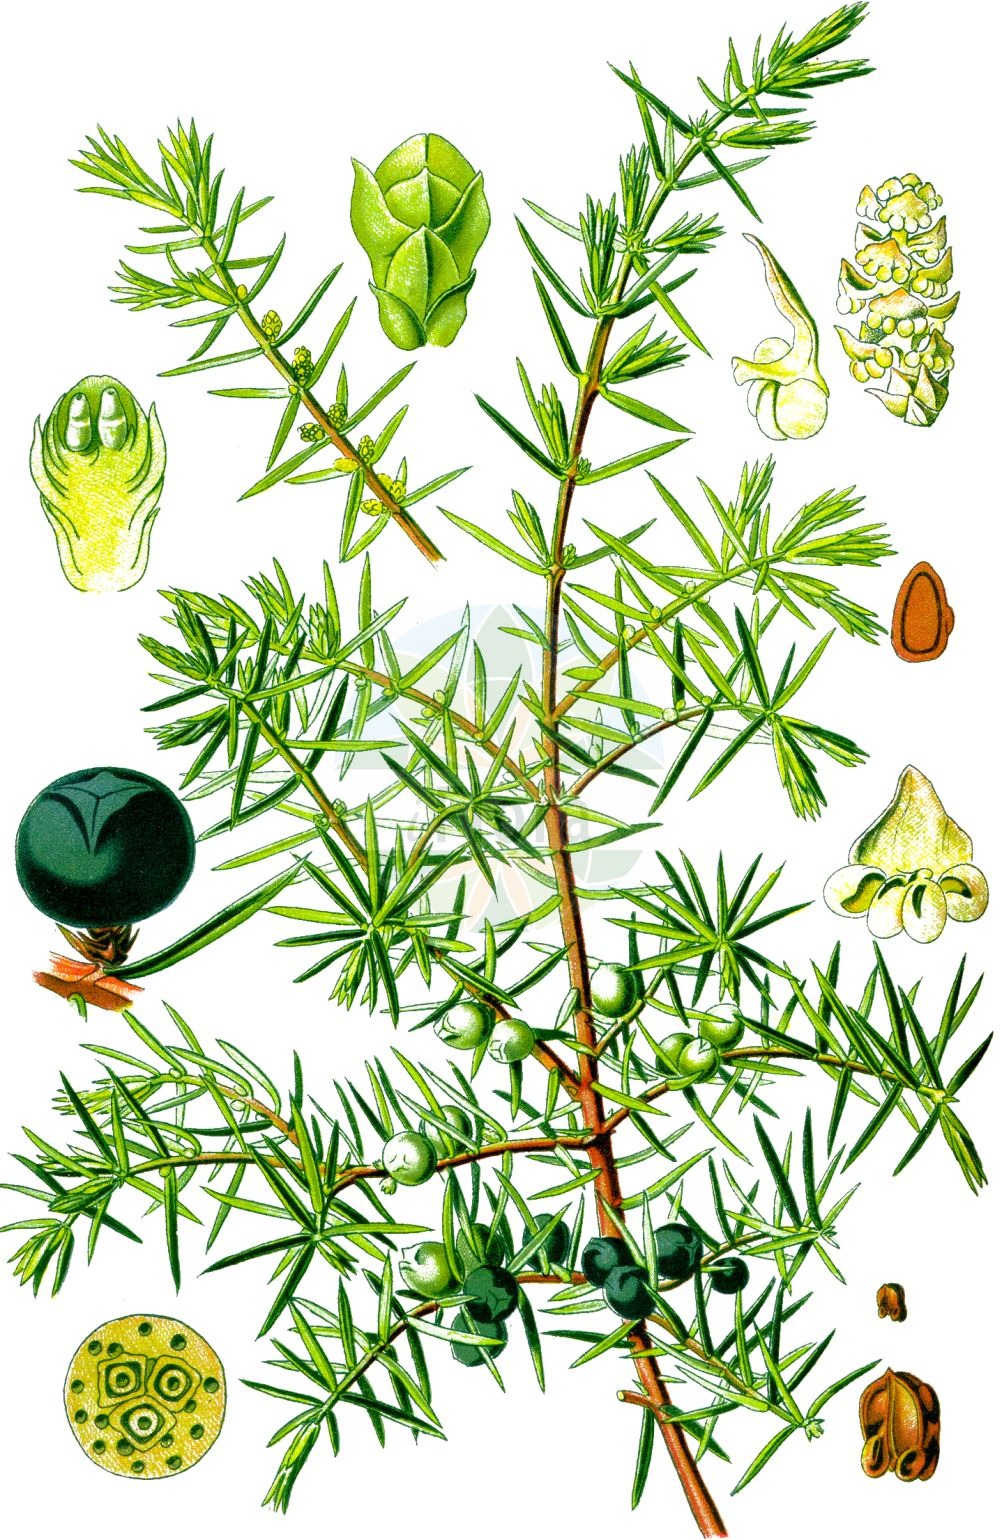 Historische Abbildung von Juniperus communis (Gewoehnlicher Wacholder - Common Juniper). Das Bild zeigt Blatt, Bluete, Frucht und Same. ---- Historical Drawing of Juniperus communis (Gewoehnlicher Wacholder - Common Juniper).The image is showing leaf, flower, fruit and seed.(Juniperus communis,Gewoehnlicher Wacholder,Common Juniper,Juniperus communis,Juniperus intermedia,Gewoehnlicher Wacholder,Gewoehnlicher Heide-Wacholder,Common Juniper,Juniper,Juniperus,Wacholder,Juniper,Cupressaceae,Zypressengewaechse,Cypress family,Blatt,Bluete,Frucht,Same,leaf,flower,fruit,seed,Thomé (1885))